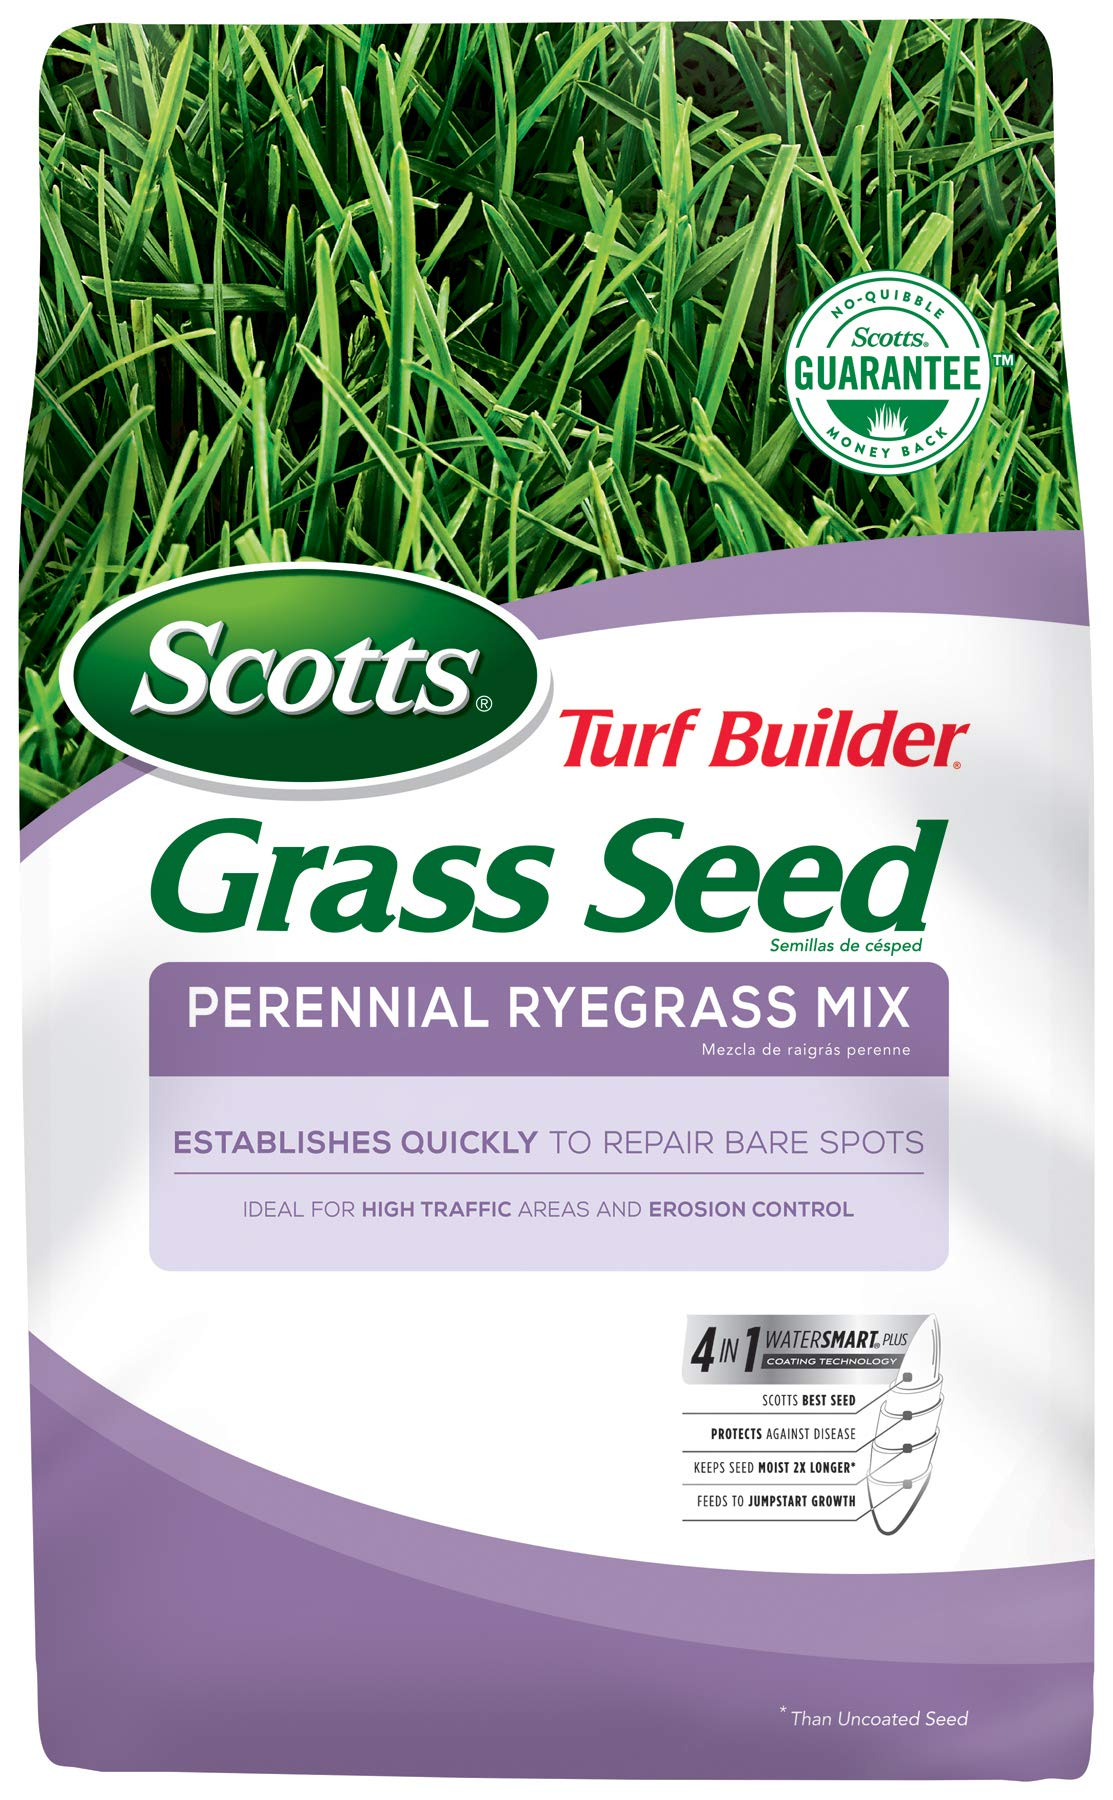 Scotts Turf Builder Grass Seed Perennial Ryegrass Mix, 7.lb. - Full Sun and Light Shade - Quickly Repairs Bare Spots, Ideal for High Traffic Areas and Erosion Control - Seeds up to 2,900 sq. ft. by Scotts